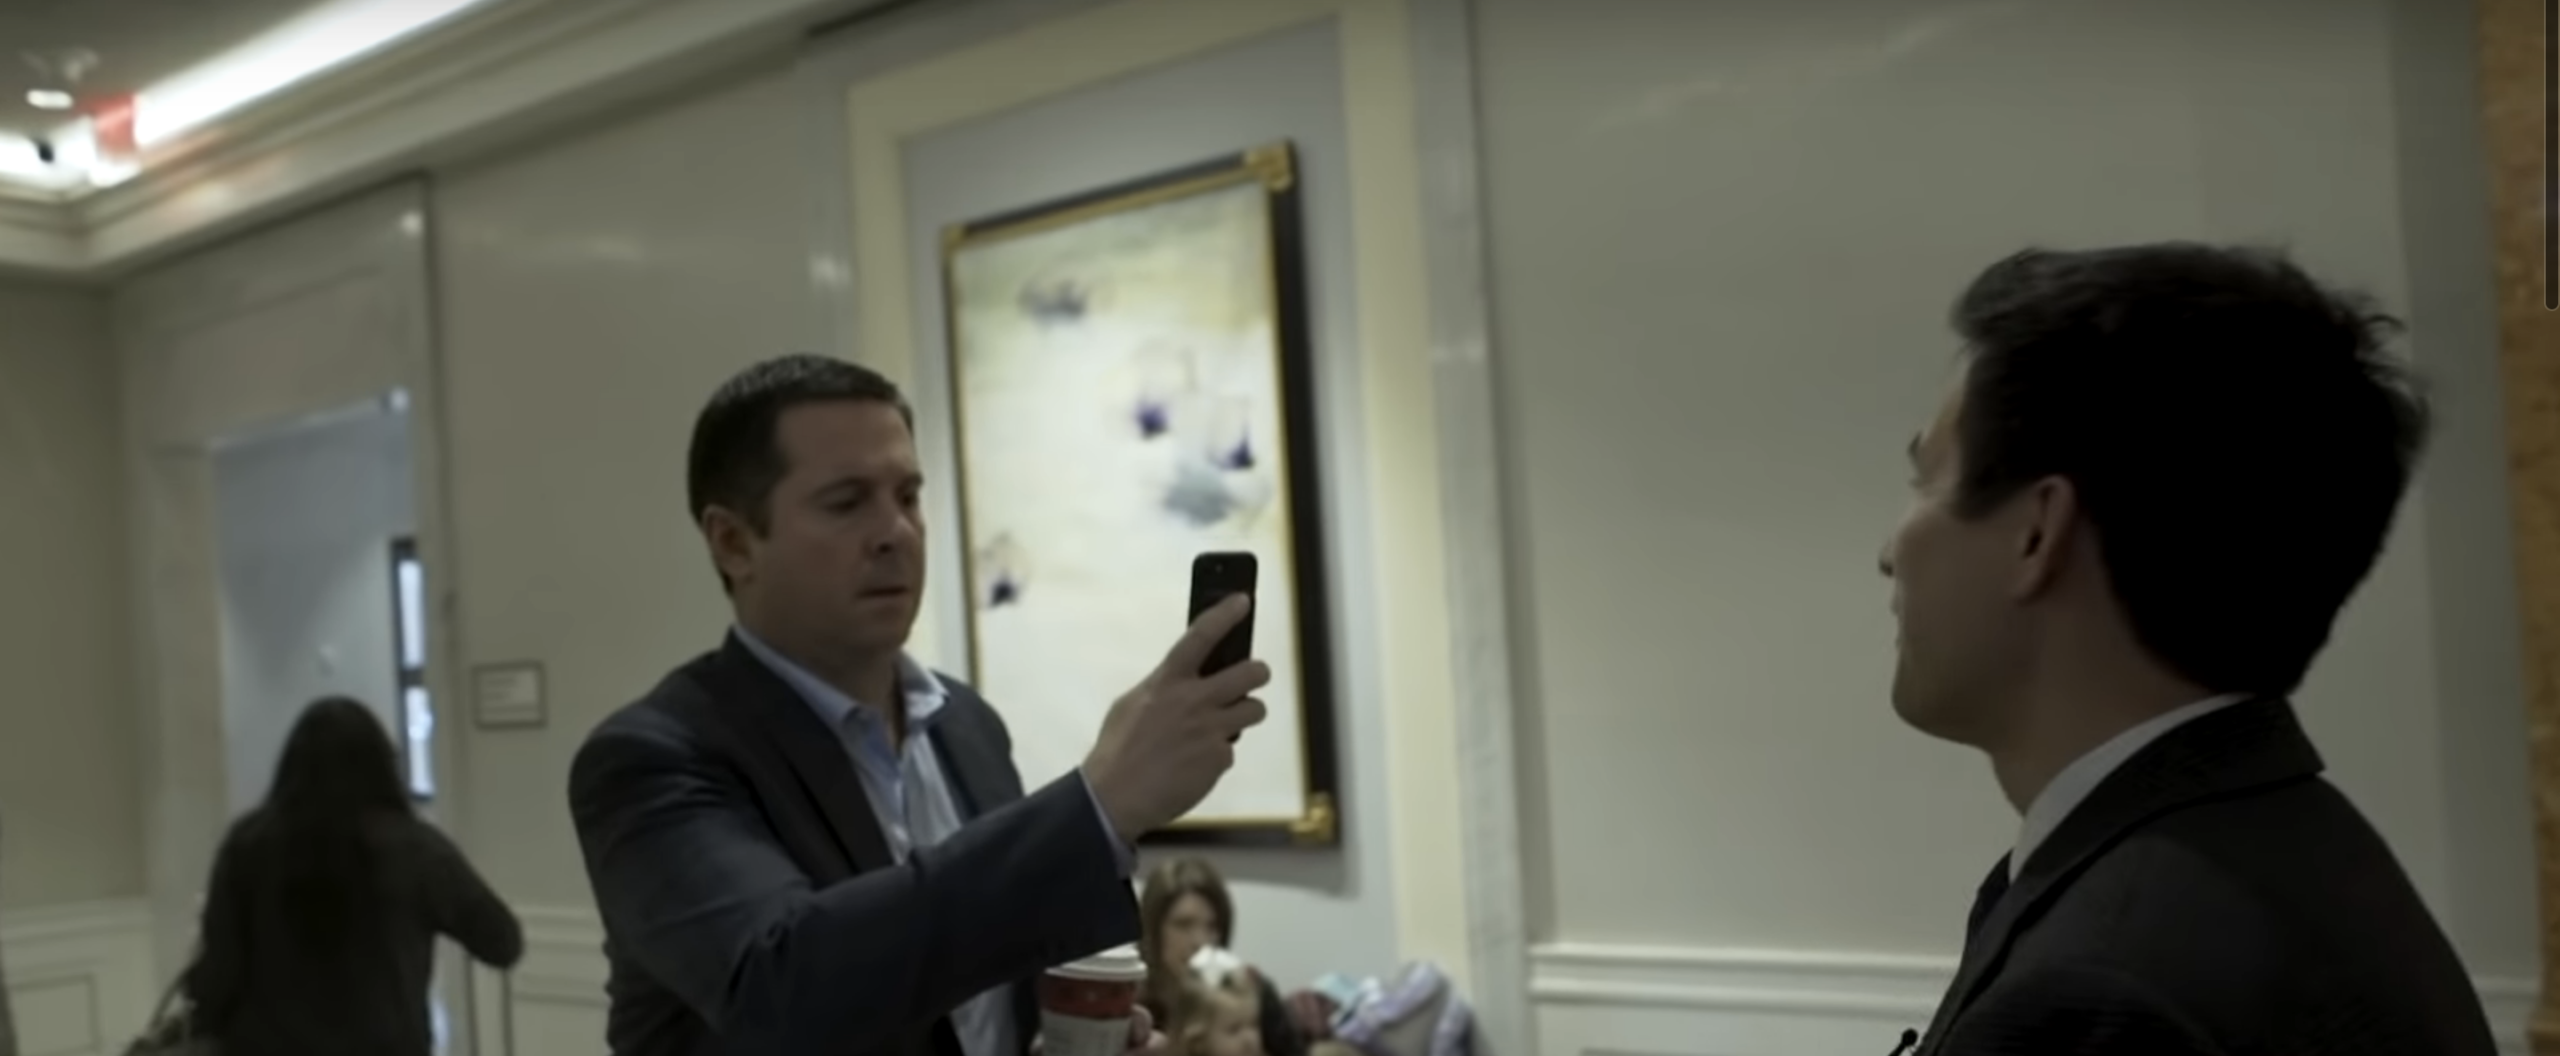 Devin Nunes Is Confronted About Ukraine And Instead Of Answering, He Starts To Film The Reporter